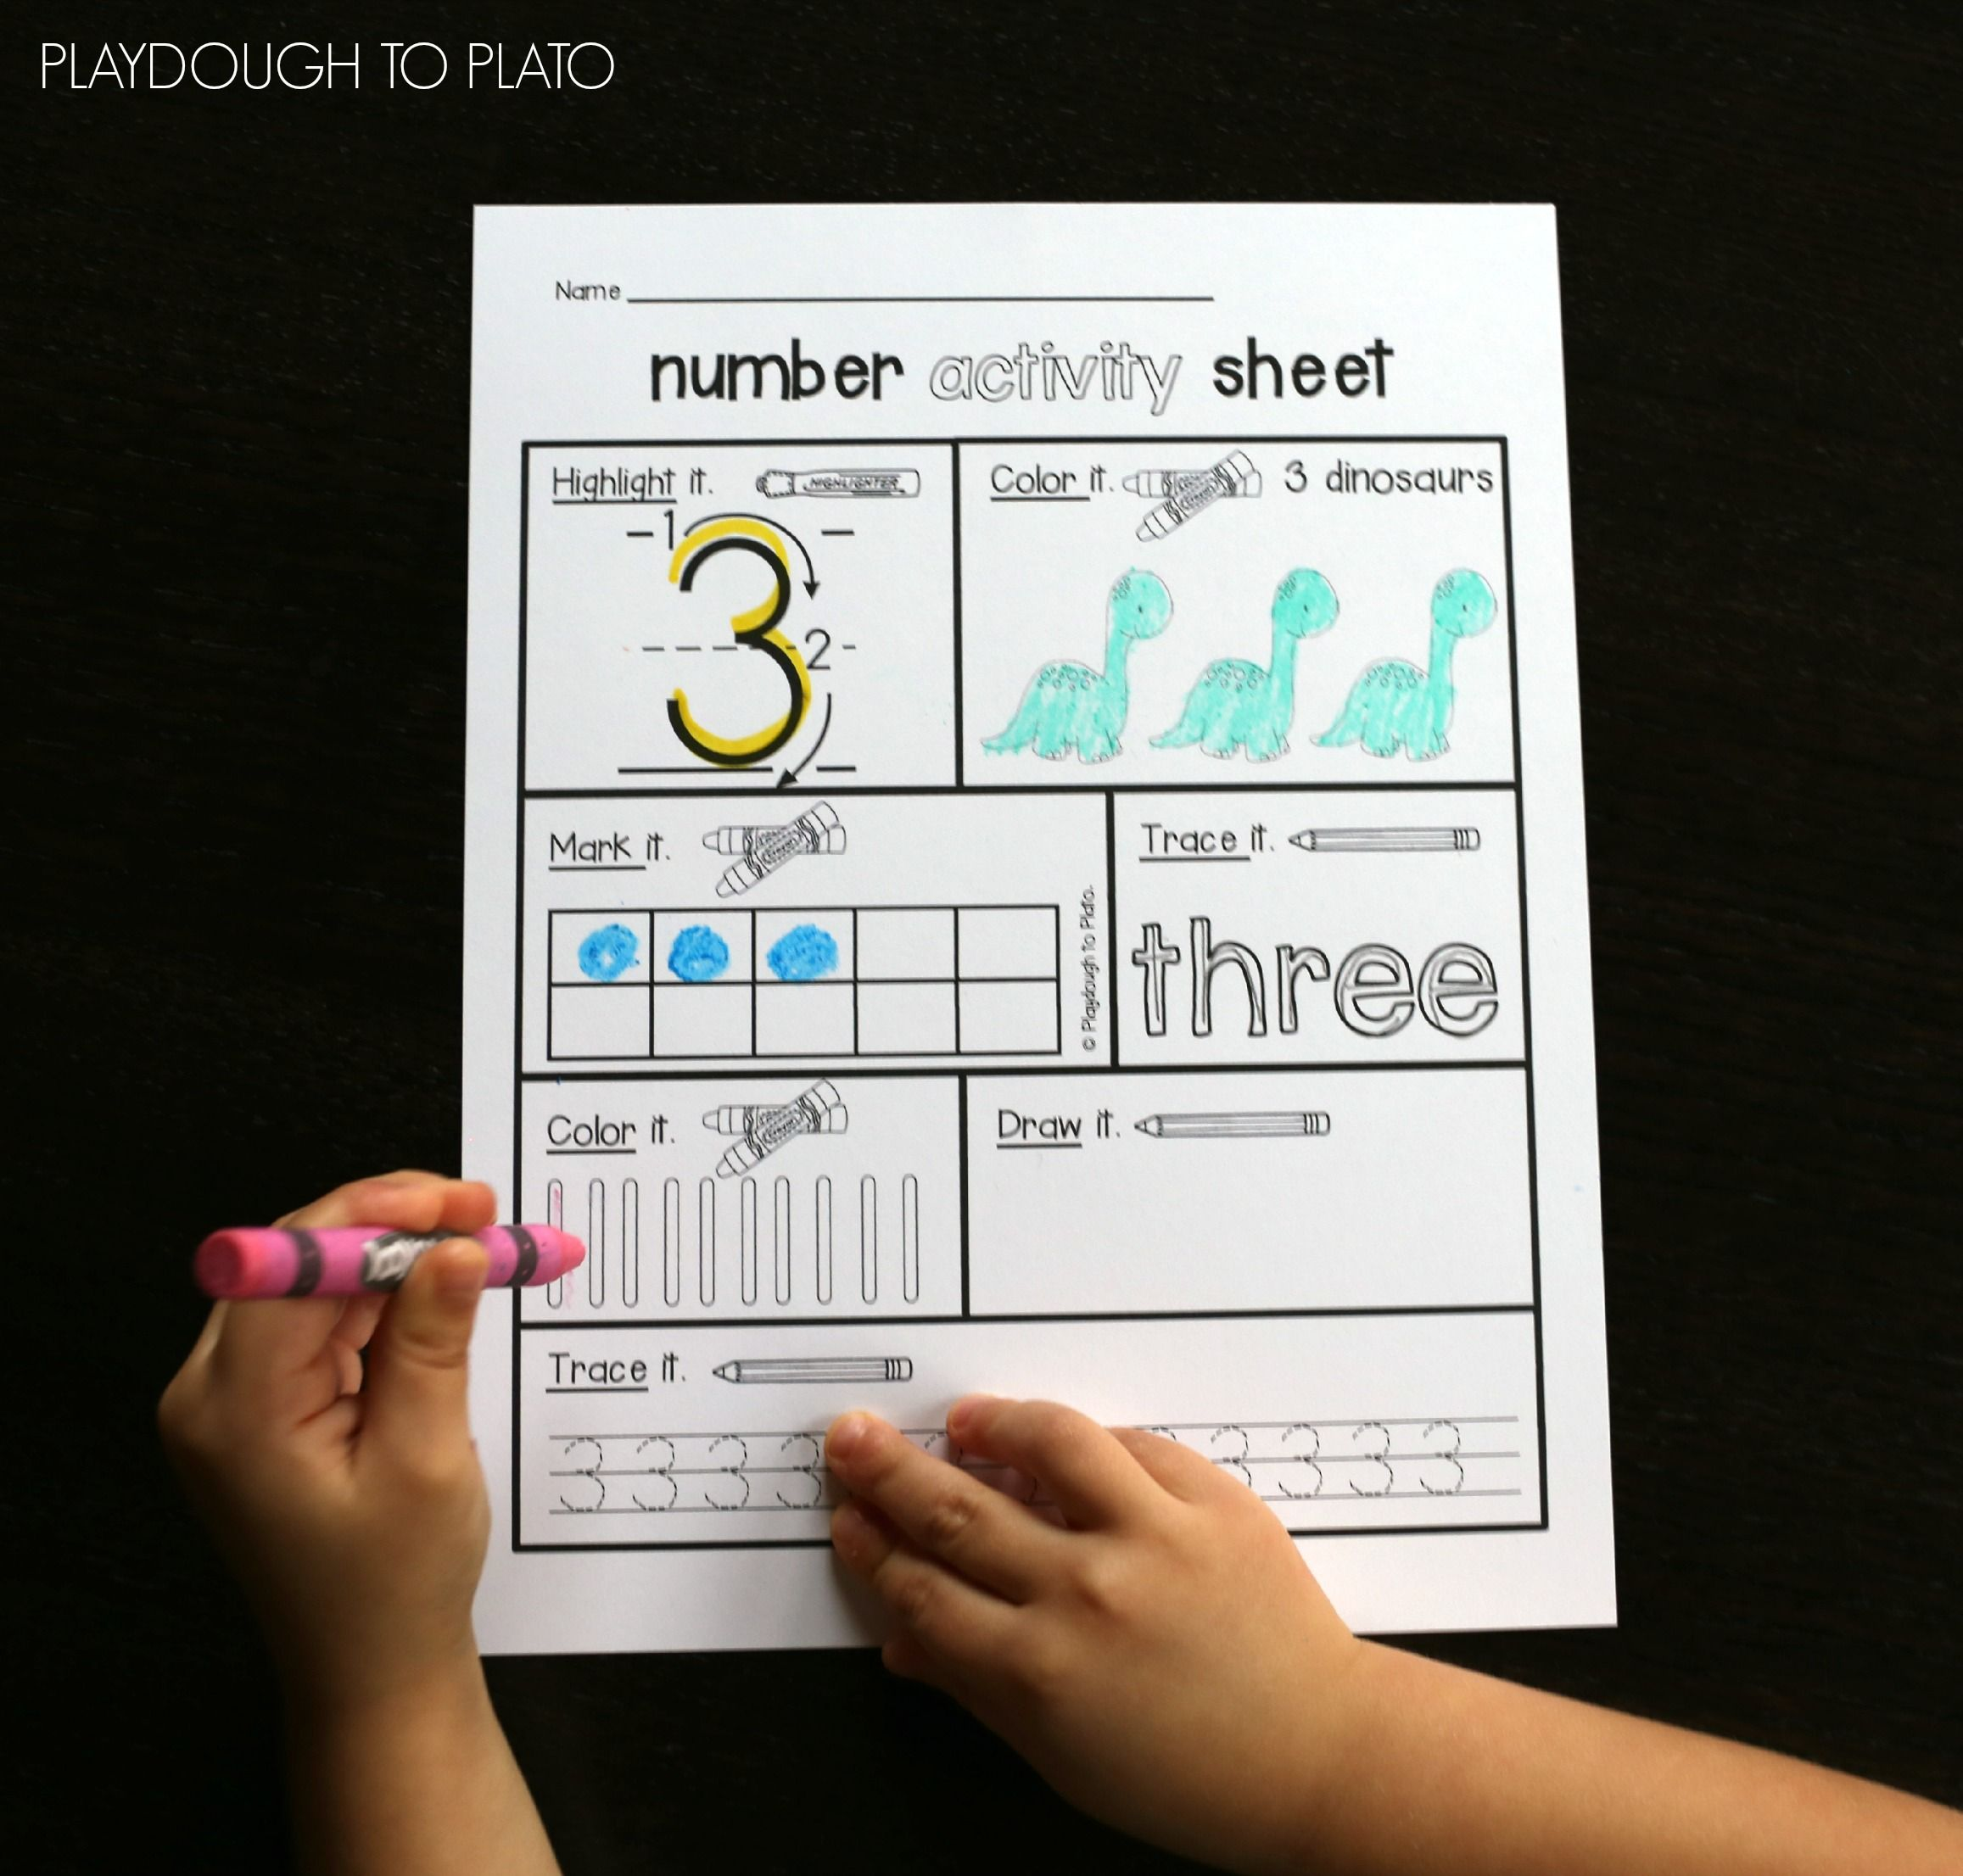 Number Activity Sheets   Number activities, Activities and Number